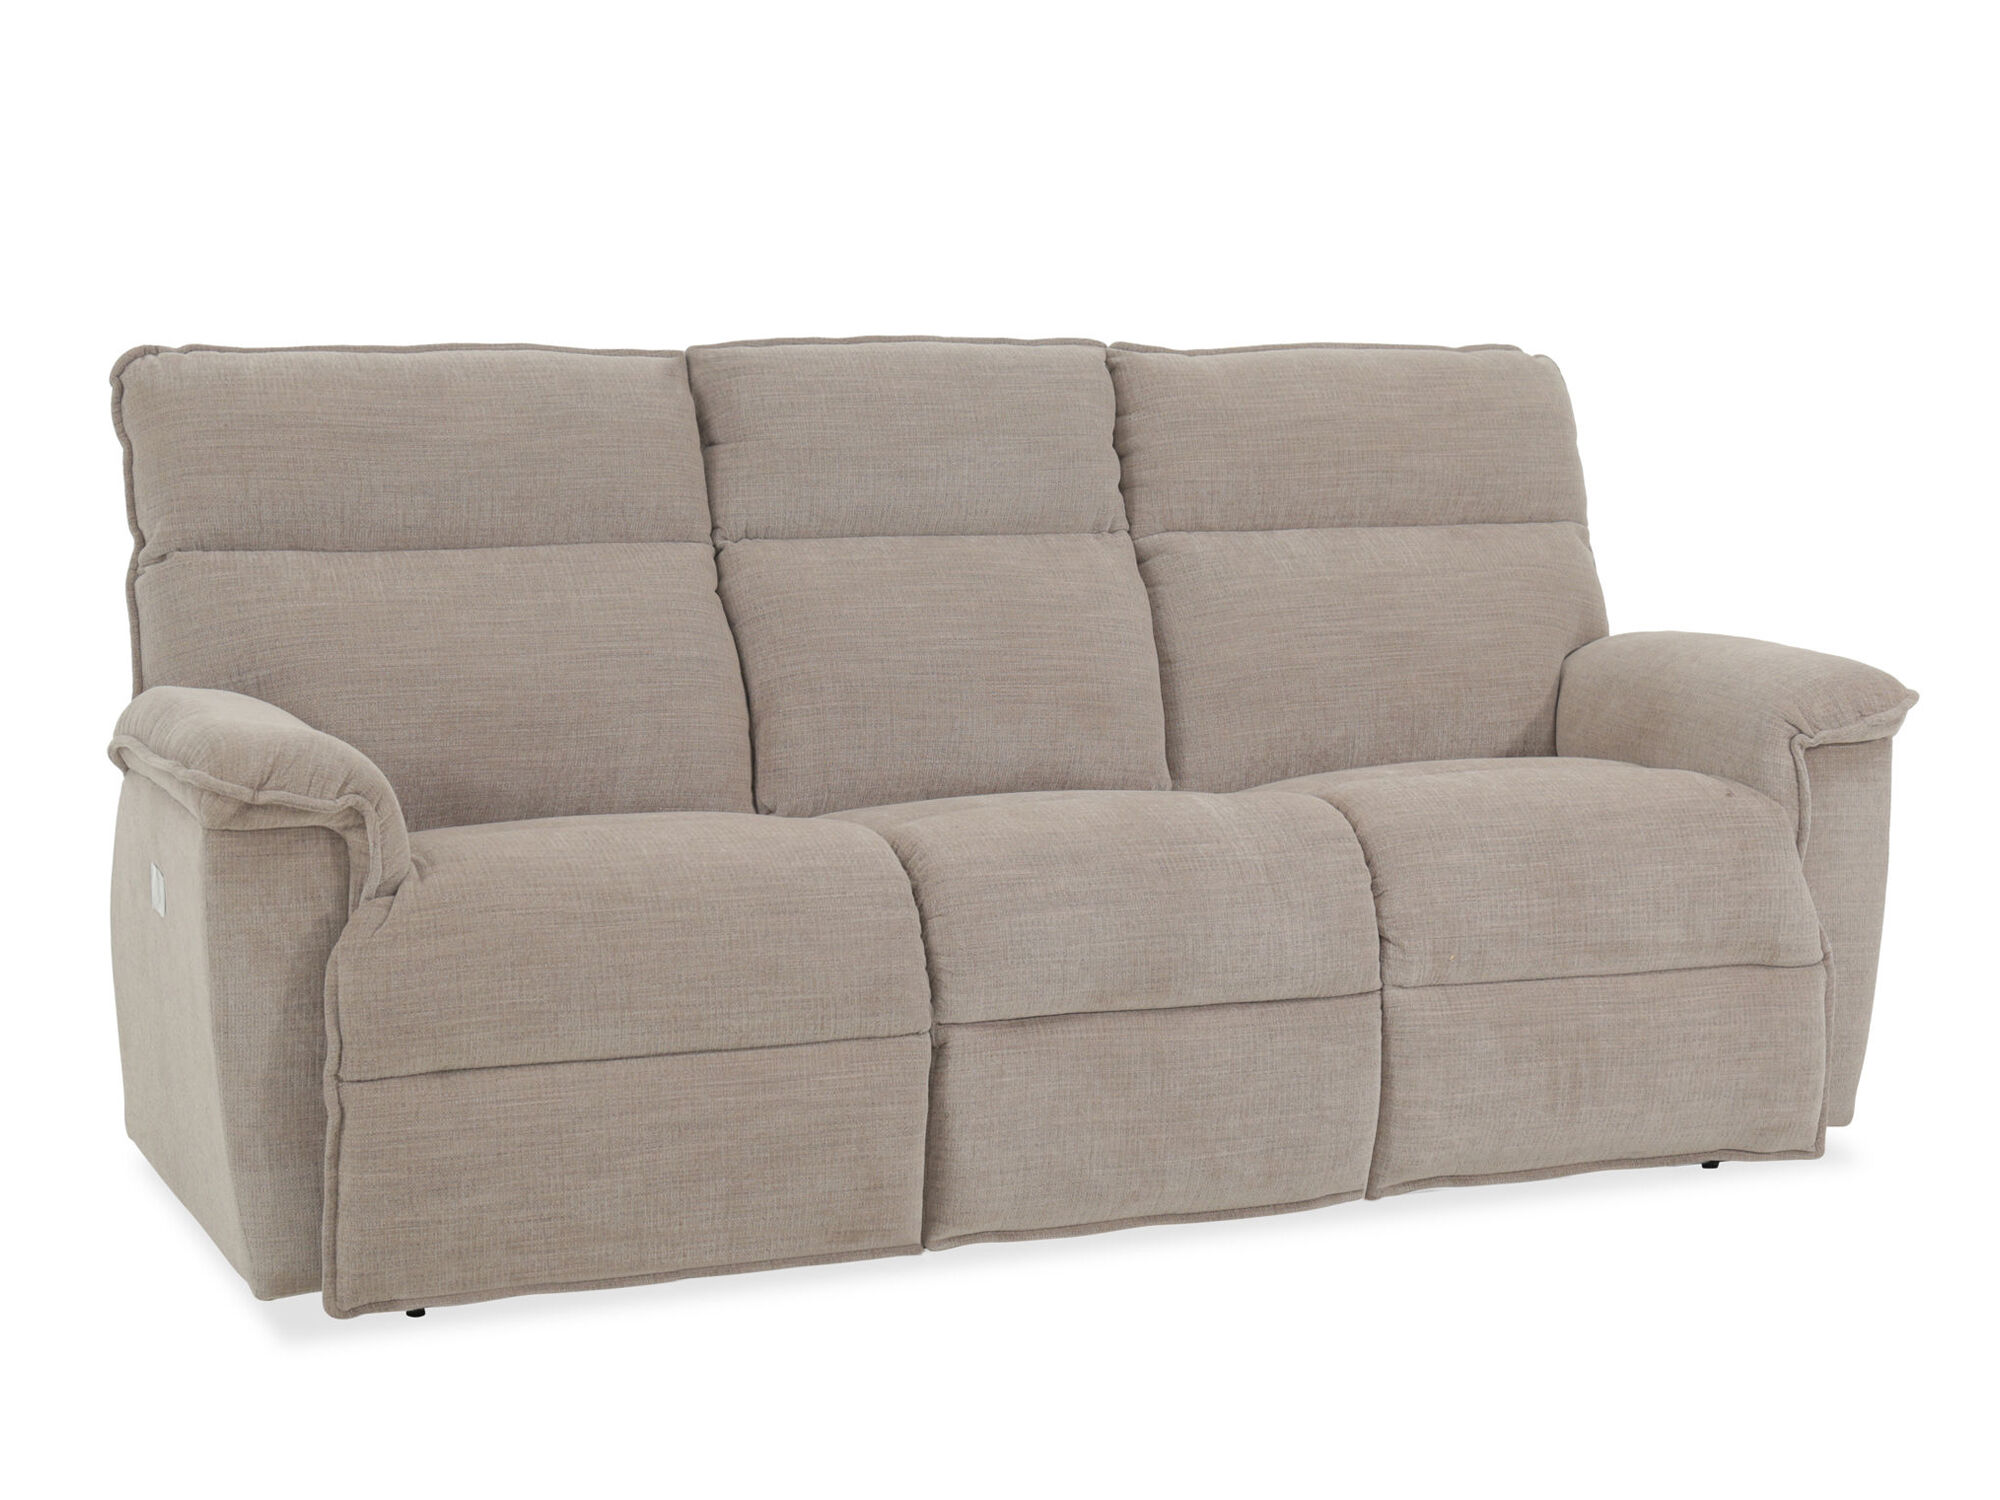 Casual 86 5 Power Reclining Sofa With Usb Port In Barley Mathis